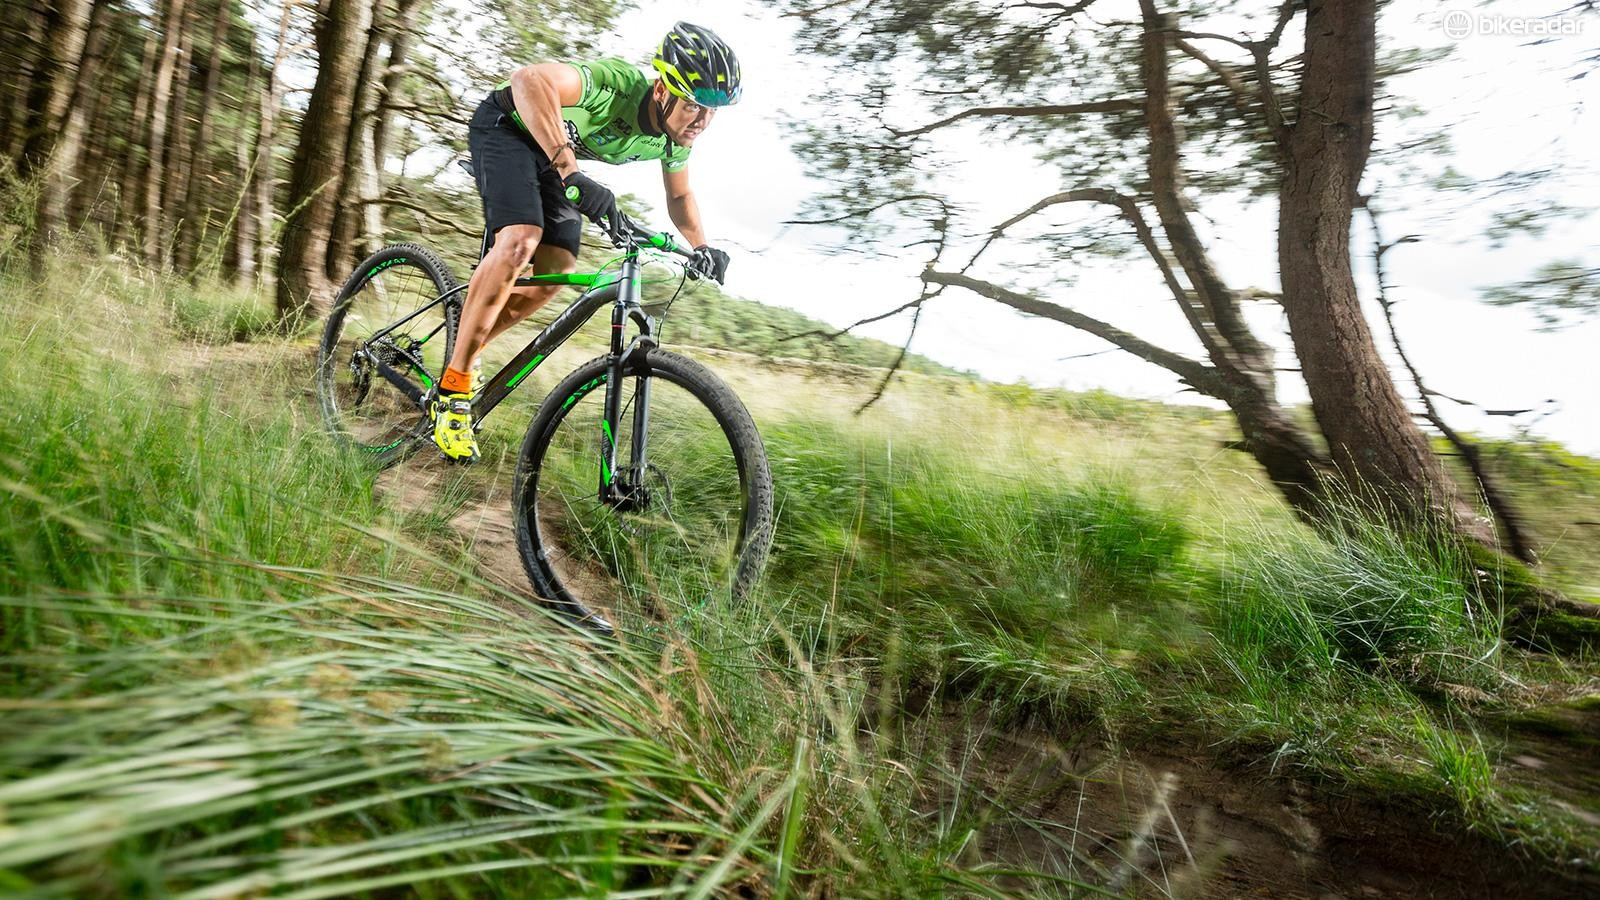 The Reaction HPA Pro comes with a RockShox Reba fork and Magura MT2 brakes